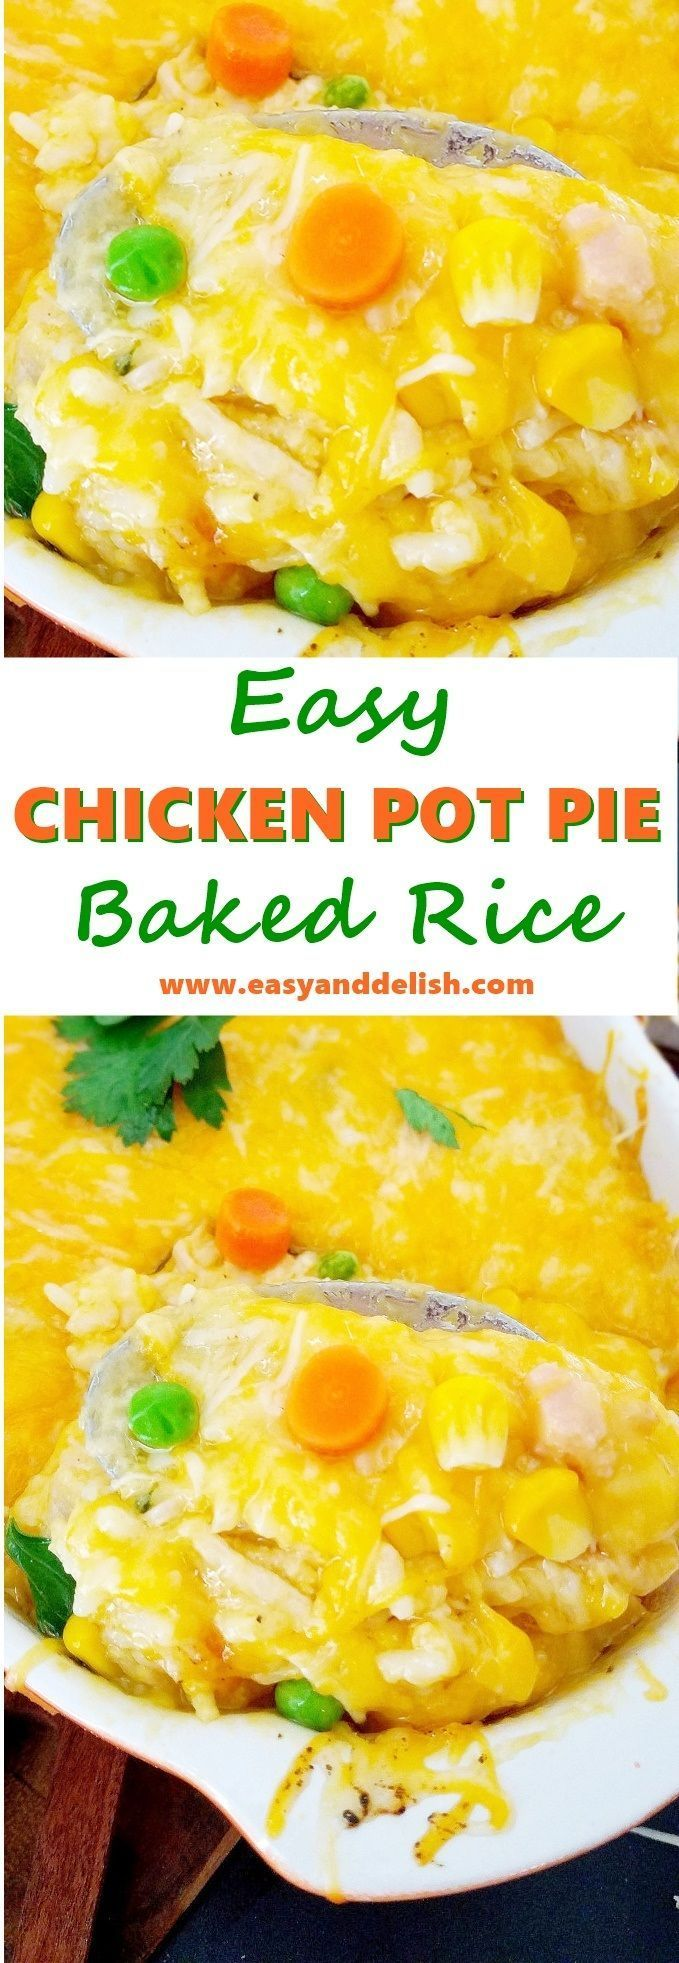 Pot Pie Baked Rice A quick and easy Chicken Pot Pie Baked Rice casserole made with pantry staples within about 30 minutes.  It has all the comforting flavors of the classic dish but without the pie crust.A quick and easy Chicken Pot Pie Baked Rice casserole made with pantry staples within about 30 minutes.  It has all the comforting flavors of the cla...Chic